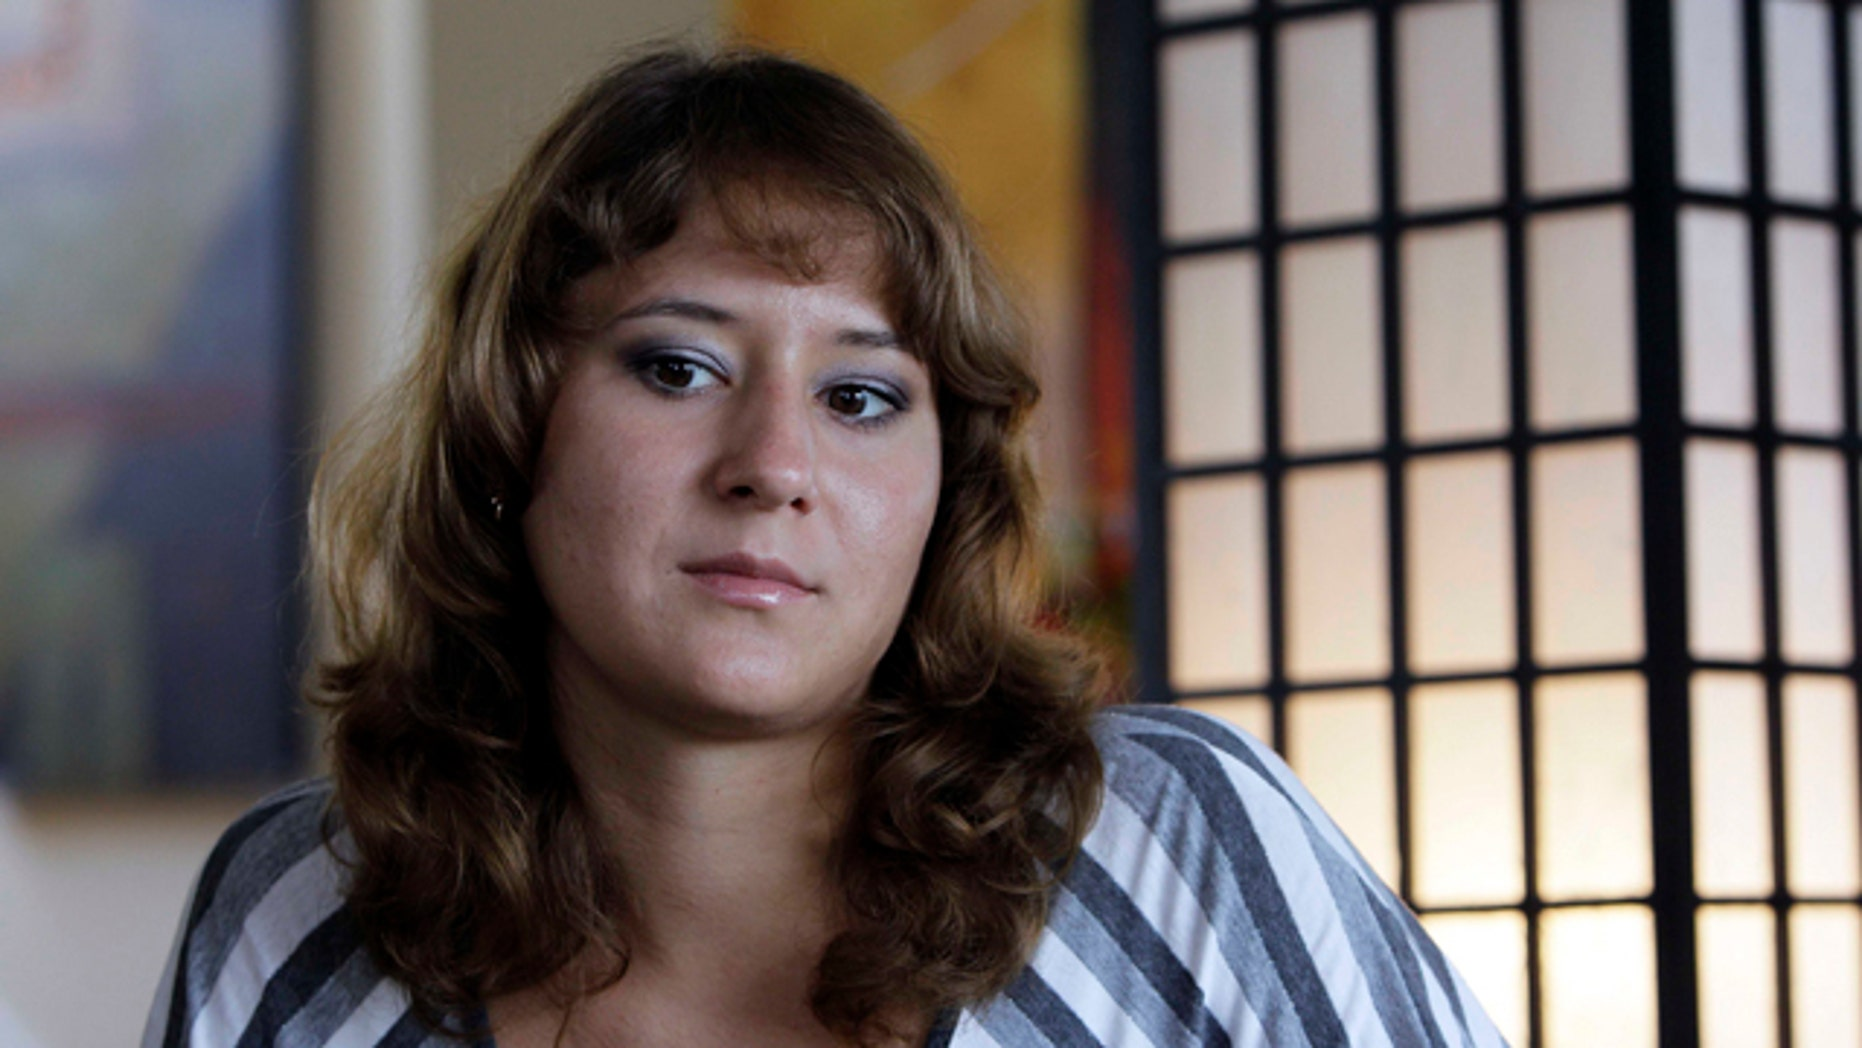 Aug. 24, 2010: Iuliia Bolgaryna sits for an interview in Surf City, N.C. Bolgaryna came to work on a J-1 visa at a souvenir store in Surf City, N.C. The store manager offered to let her and two other women from the Ukraine stay with him for $120 a week. But he wouldn't let them eat at the table, so they huddled together for meals on the floor. They worked loads of overtime but were only paid for 40 hours a week. (AP)